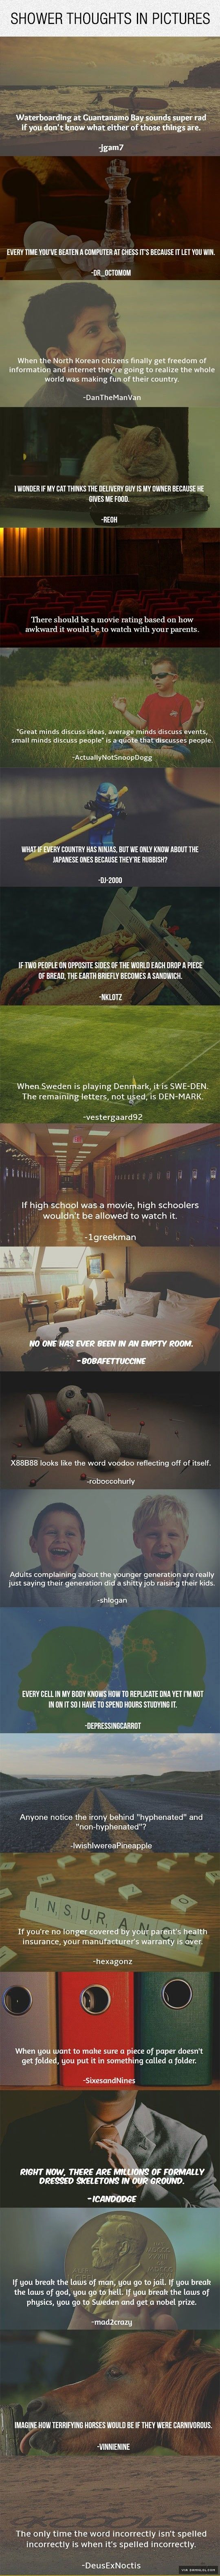 Mind-Bending Shower Thoughts In Pictures - The Best Funny Pictures